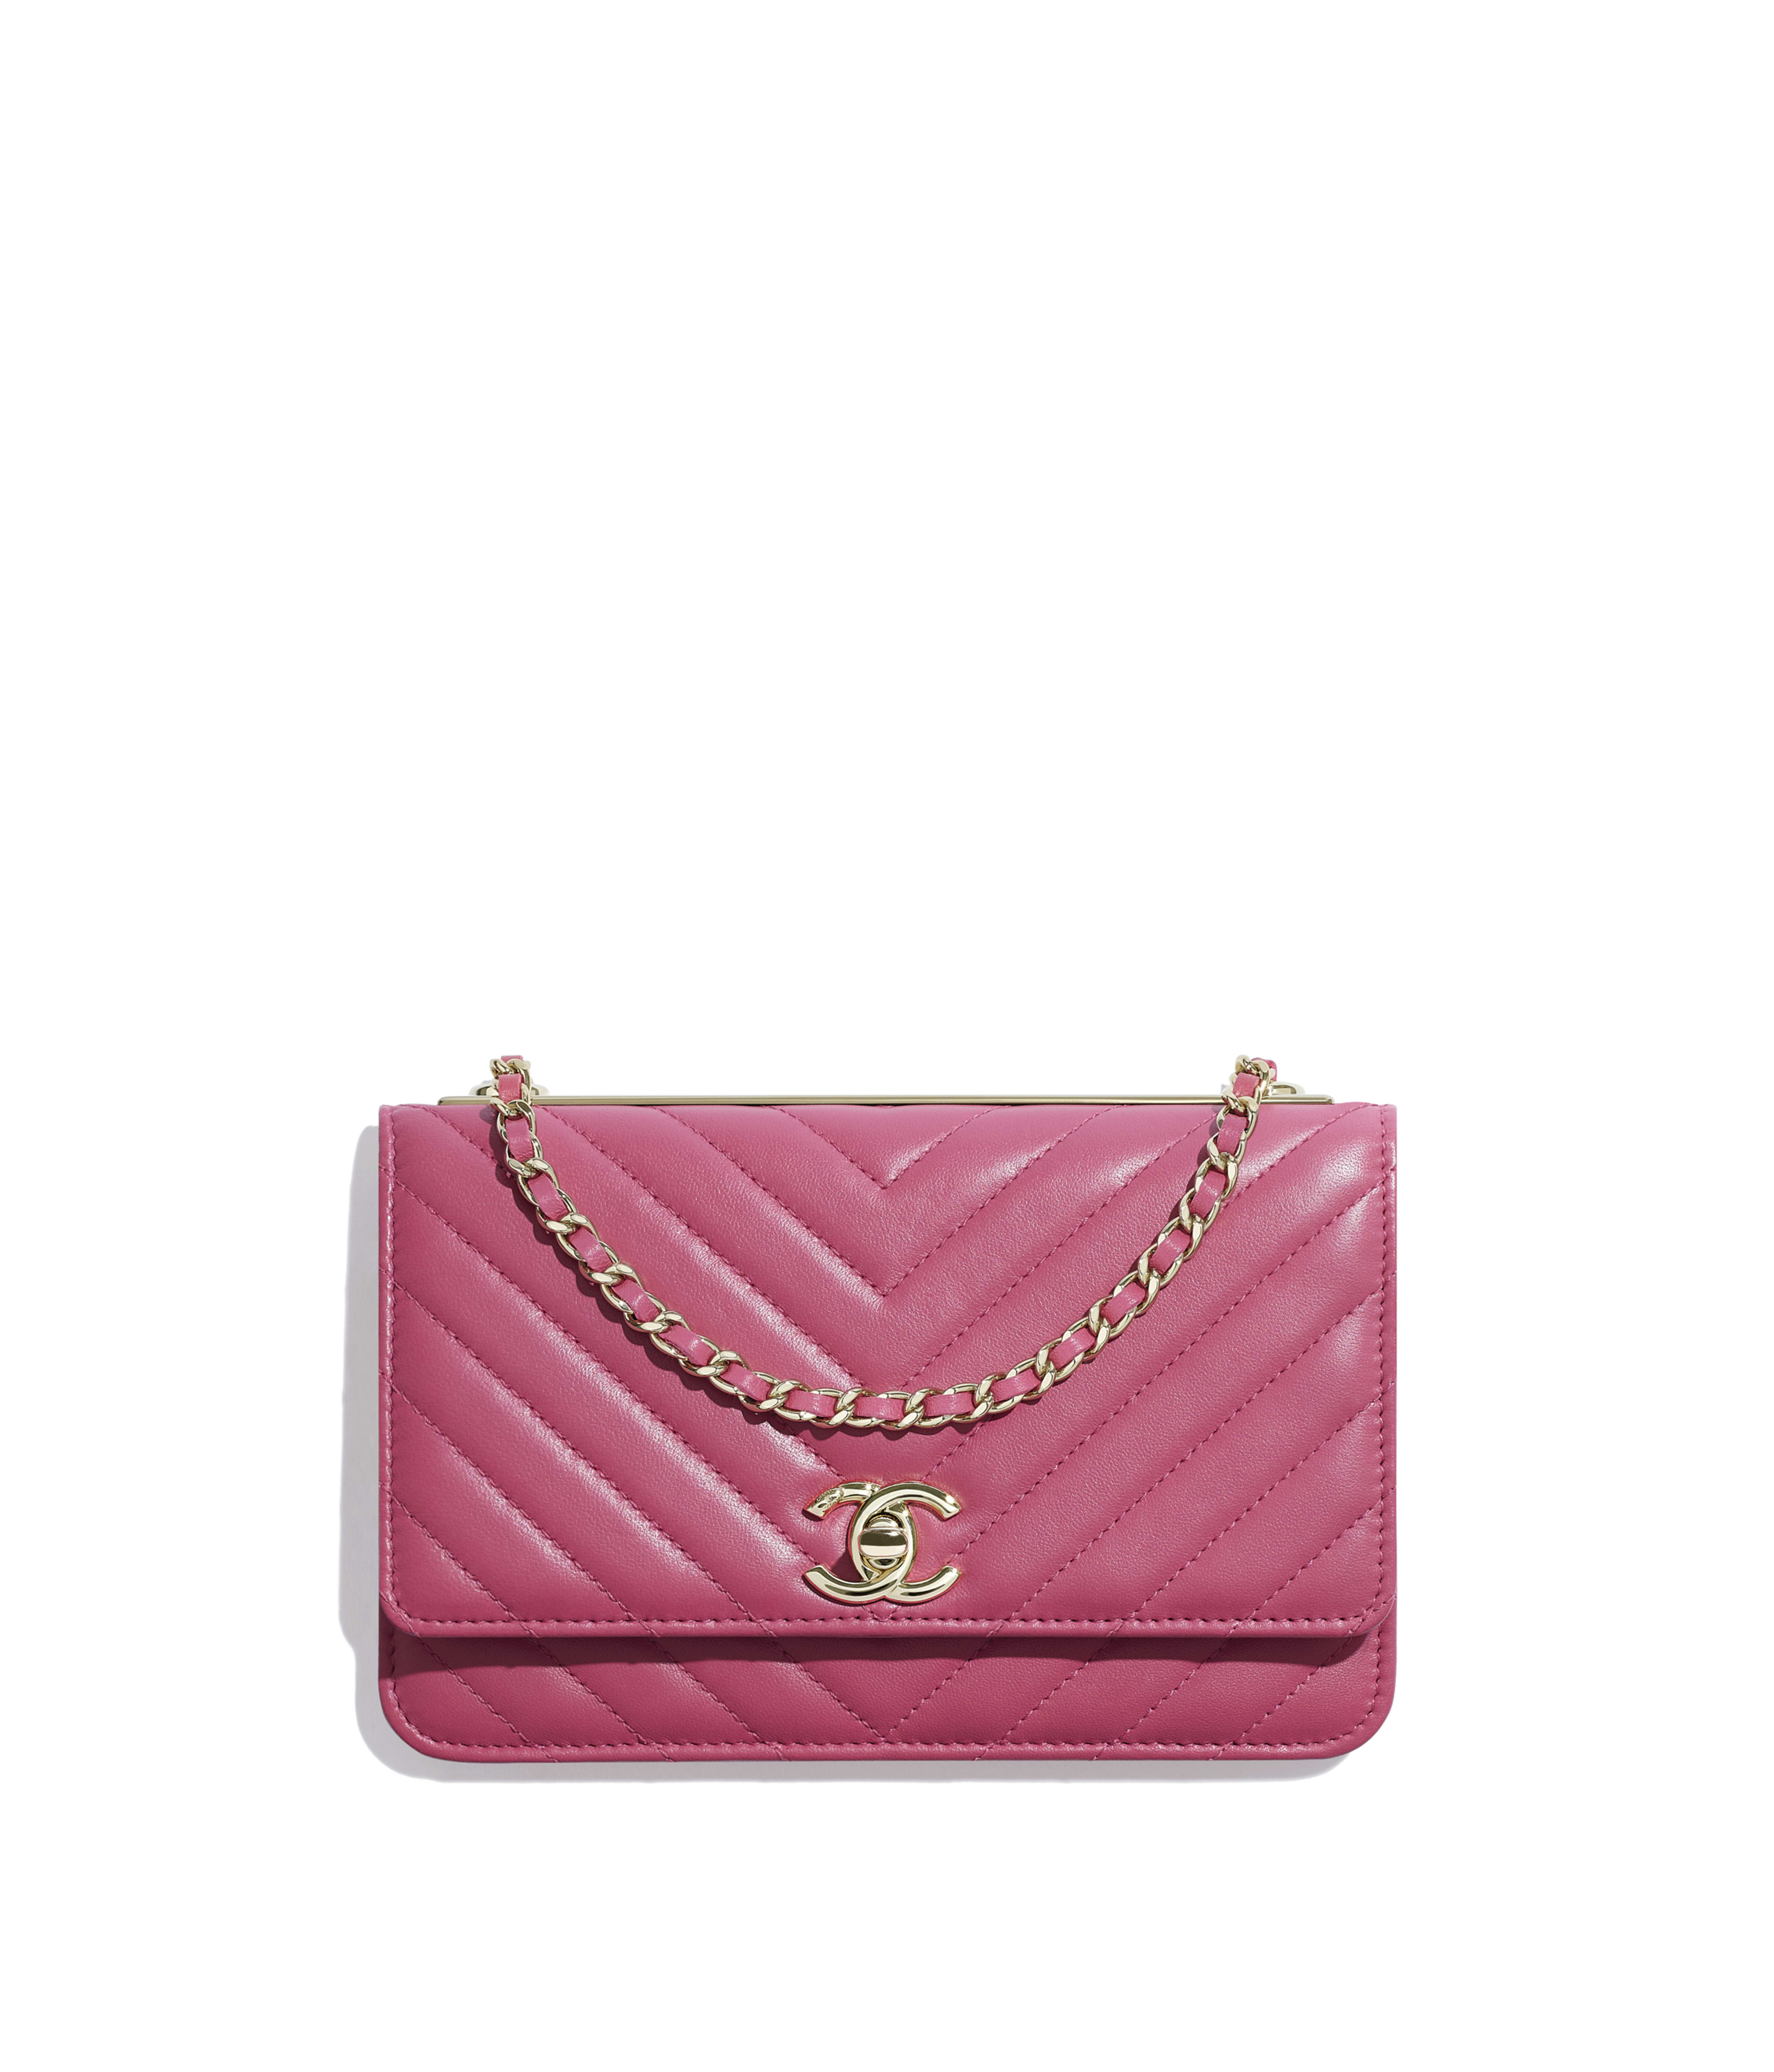 4b6660e0acce Wallet on Chain Lambskin & Gold-Tone Metal, Pink Ref. A80982Y833665B649